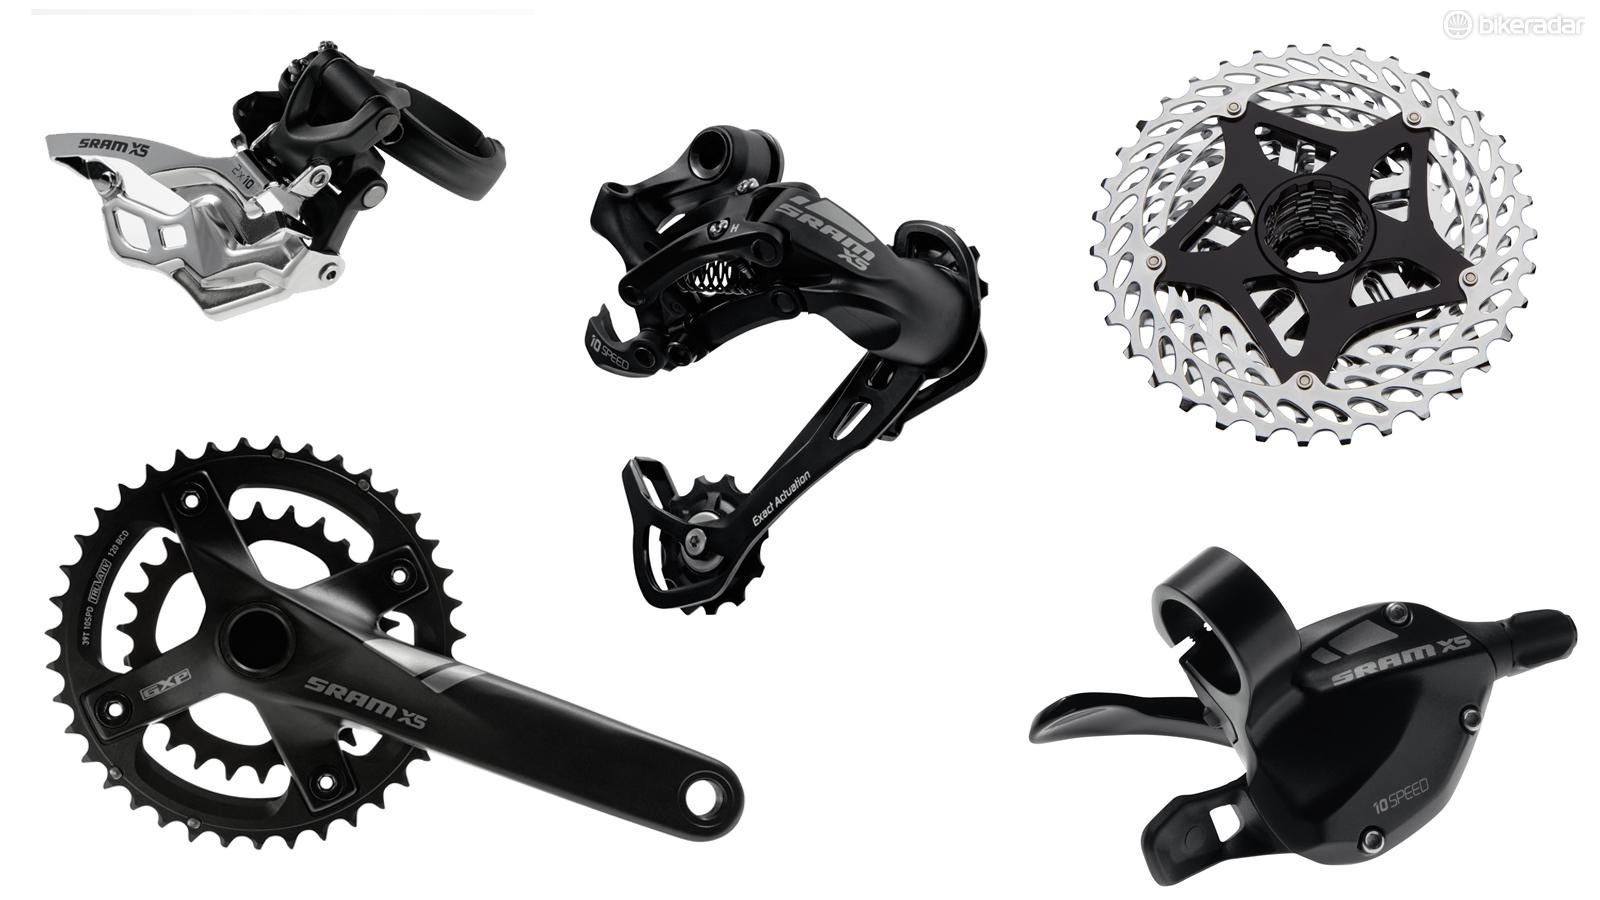 X5 is SRAM's first full groupset and it's a high-value option for those seeking 10-speed gearing. SRAM introduces its 2x10 gearing at this level